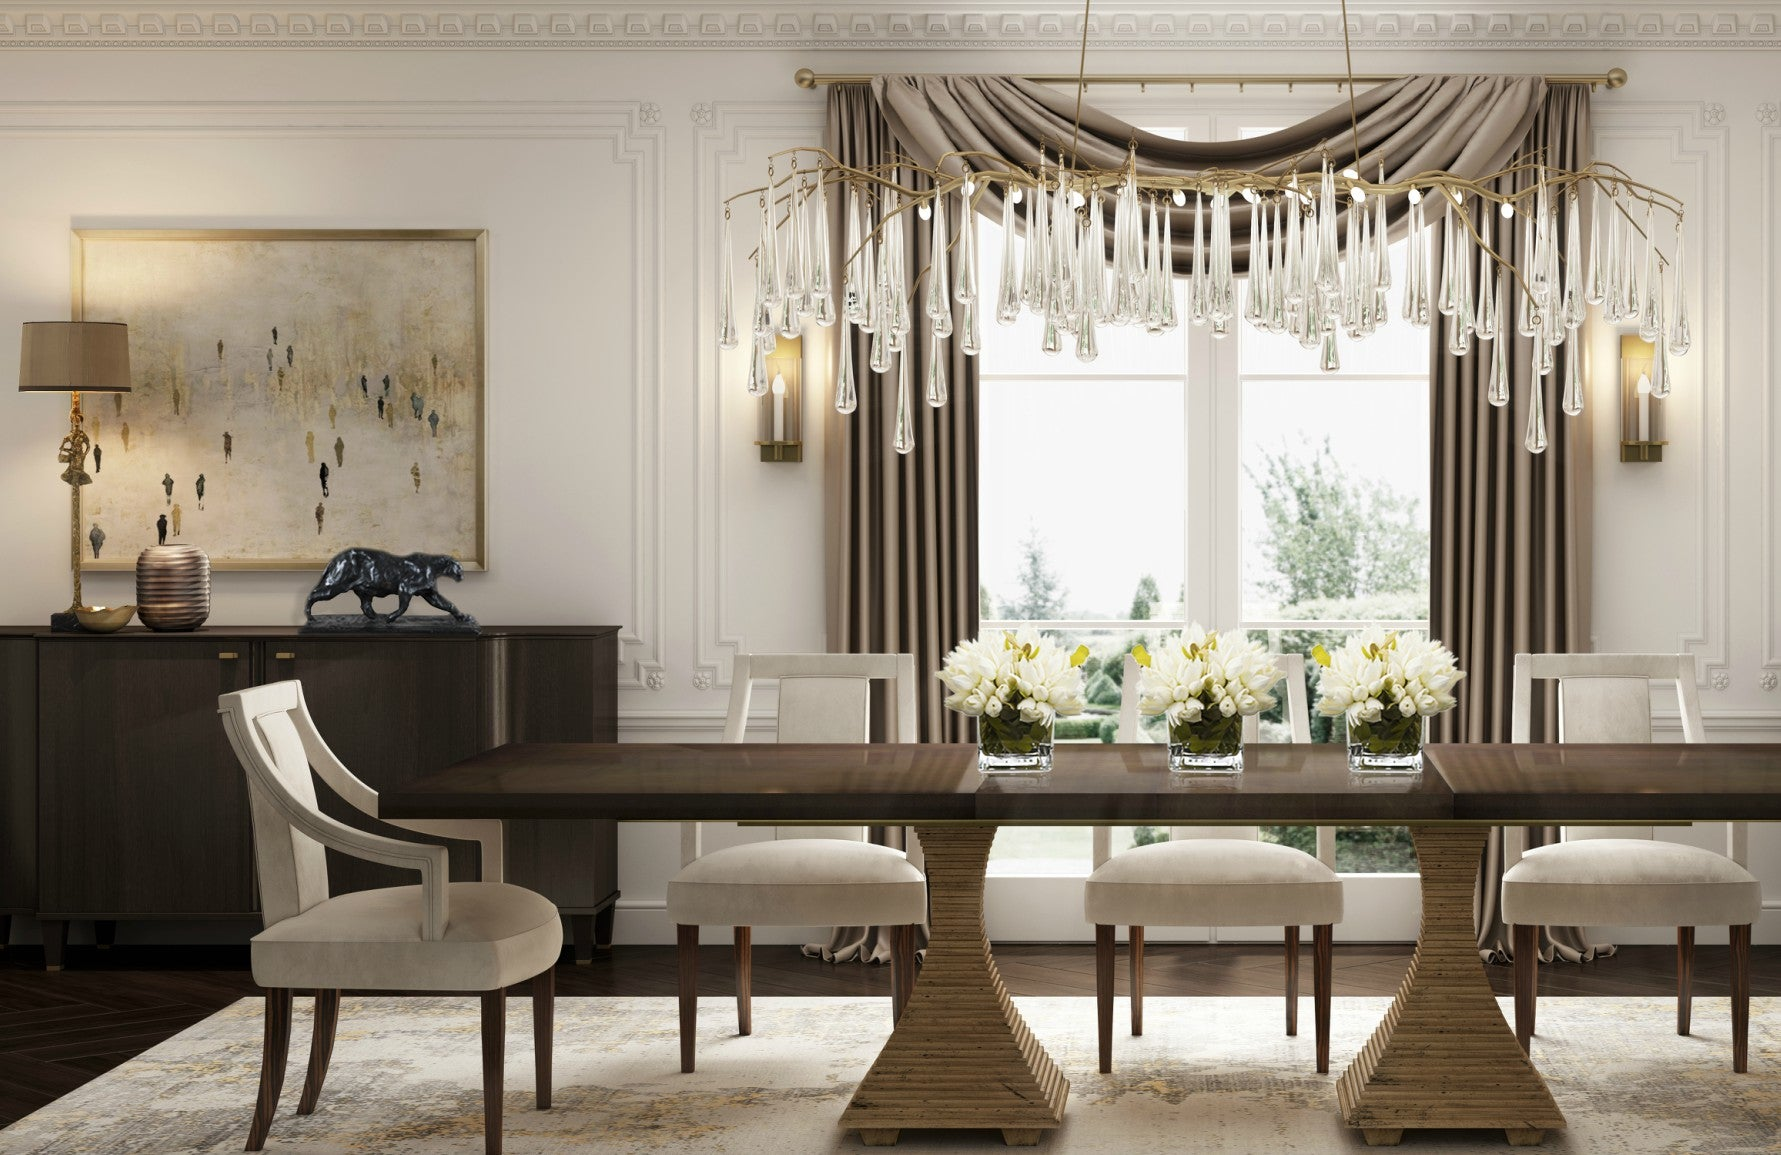 Autumn Winter 2019 Collection | Surrey Lookbook | Luxury Dining Room | LuxDeco.com